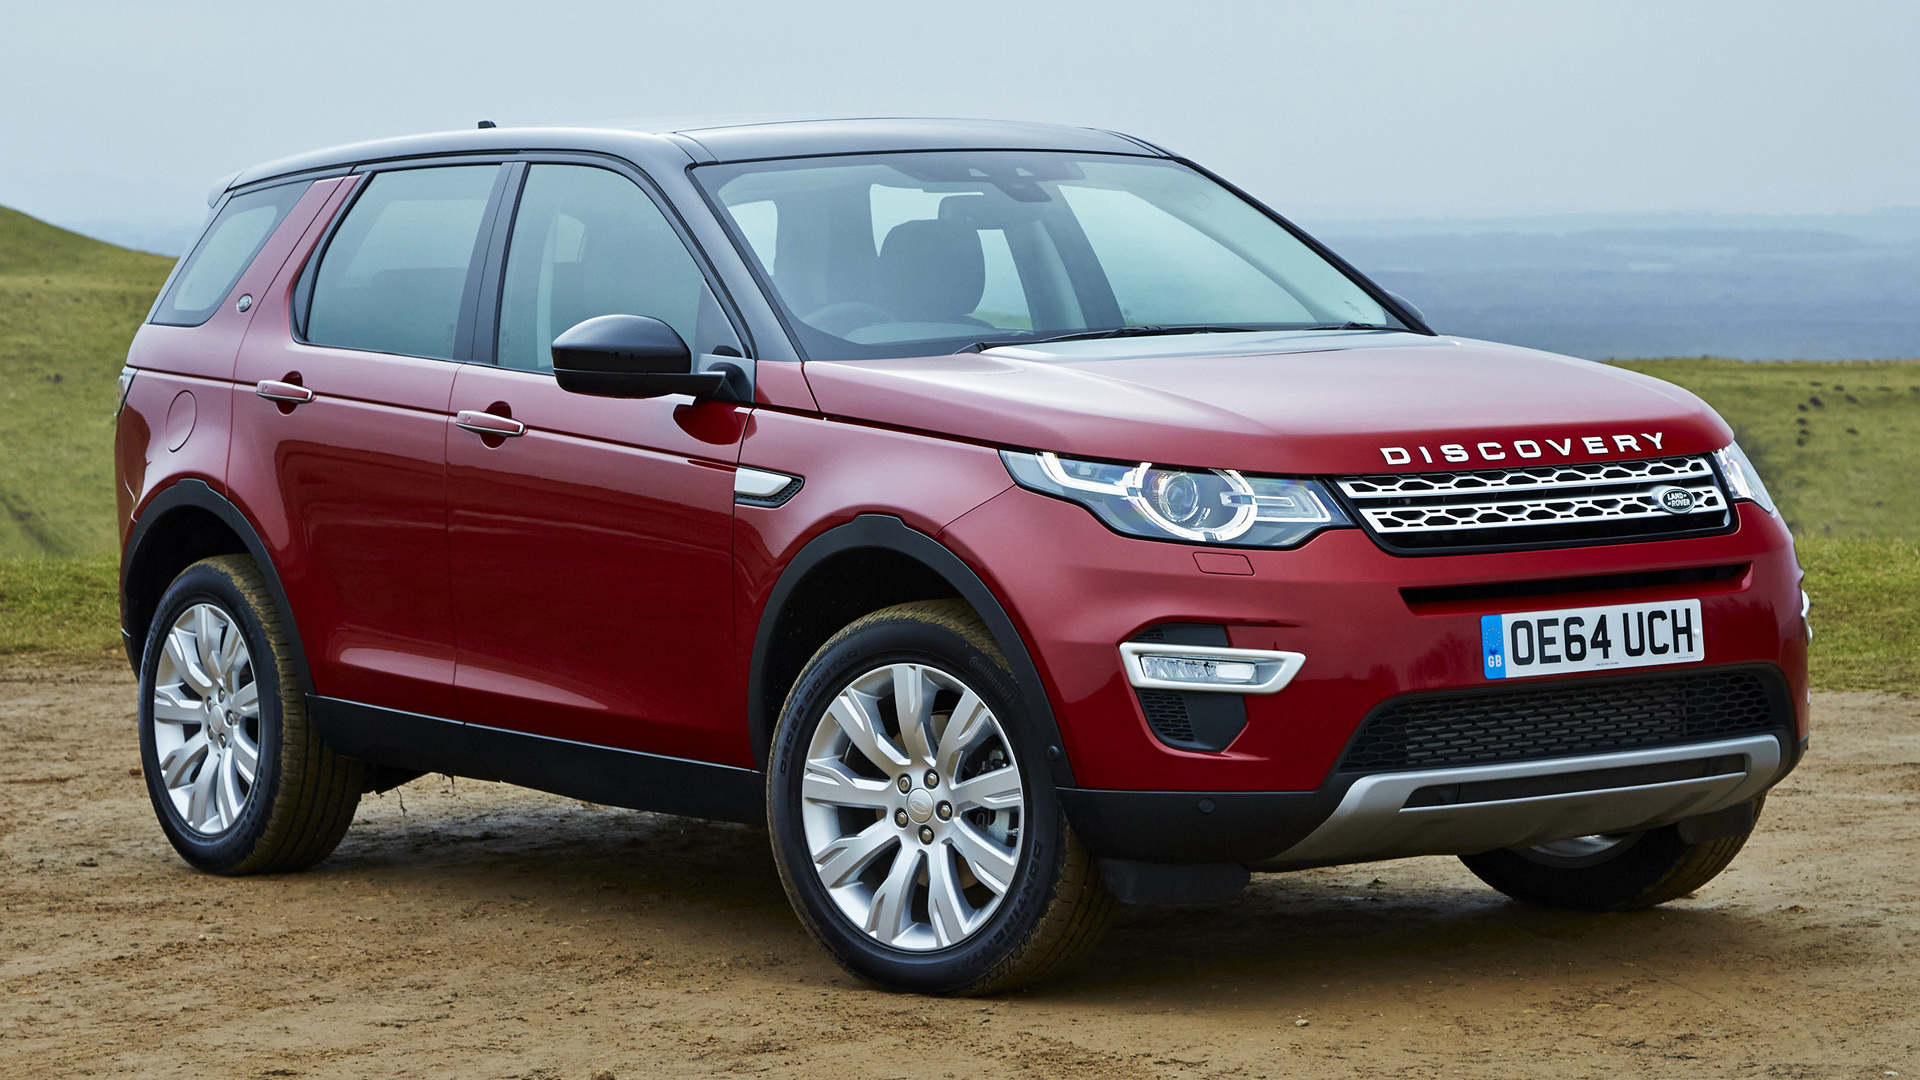 sport hse luxury 2015 uk wallpapers and hd images   car pixel